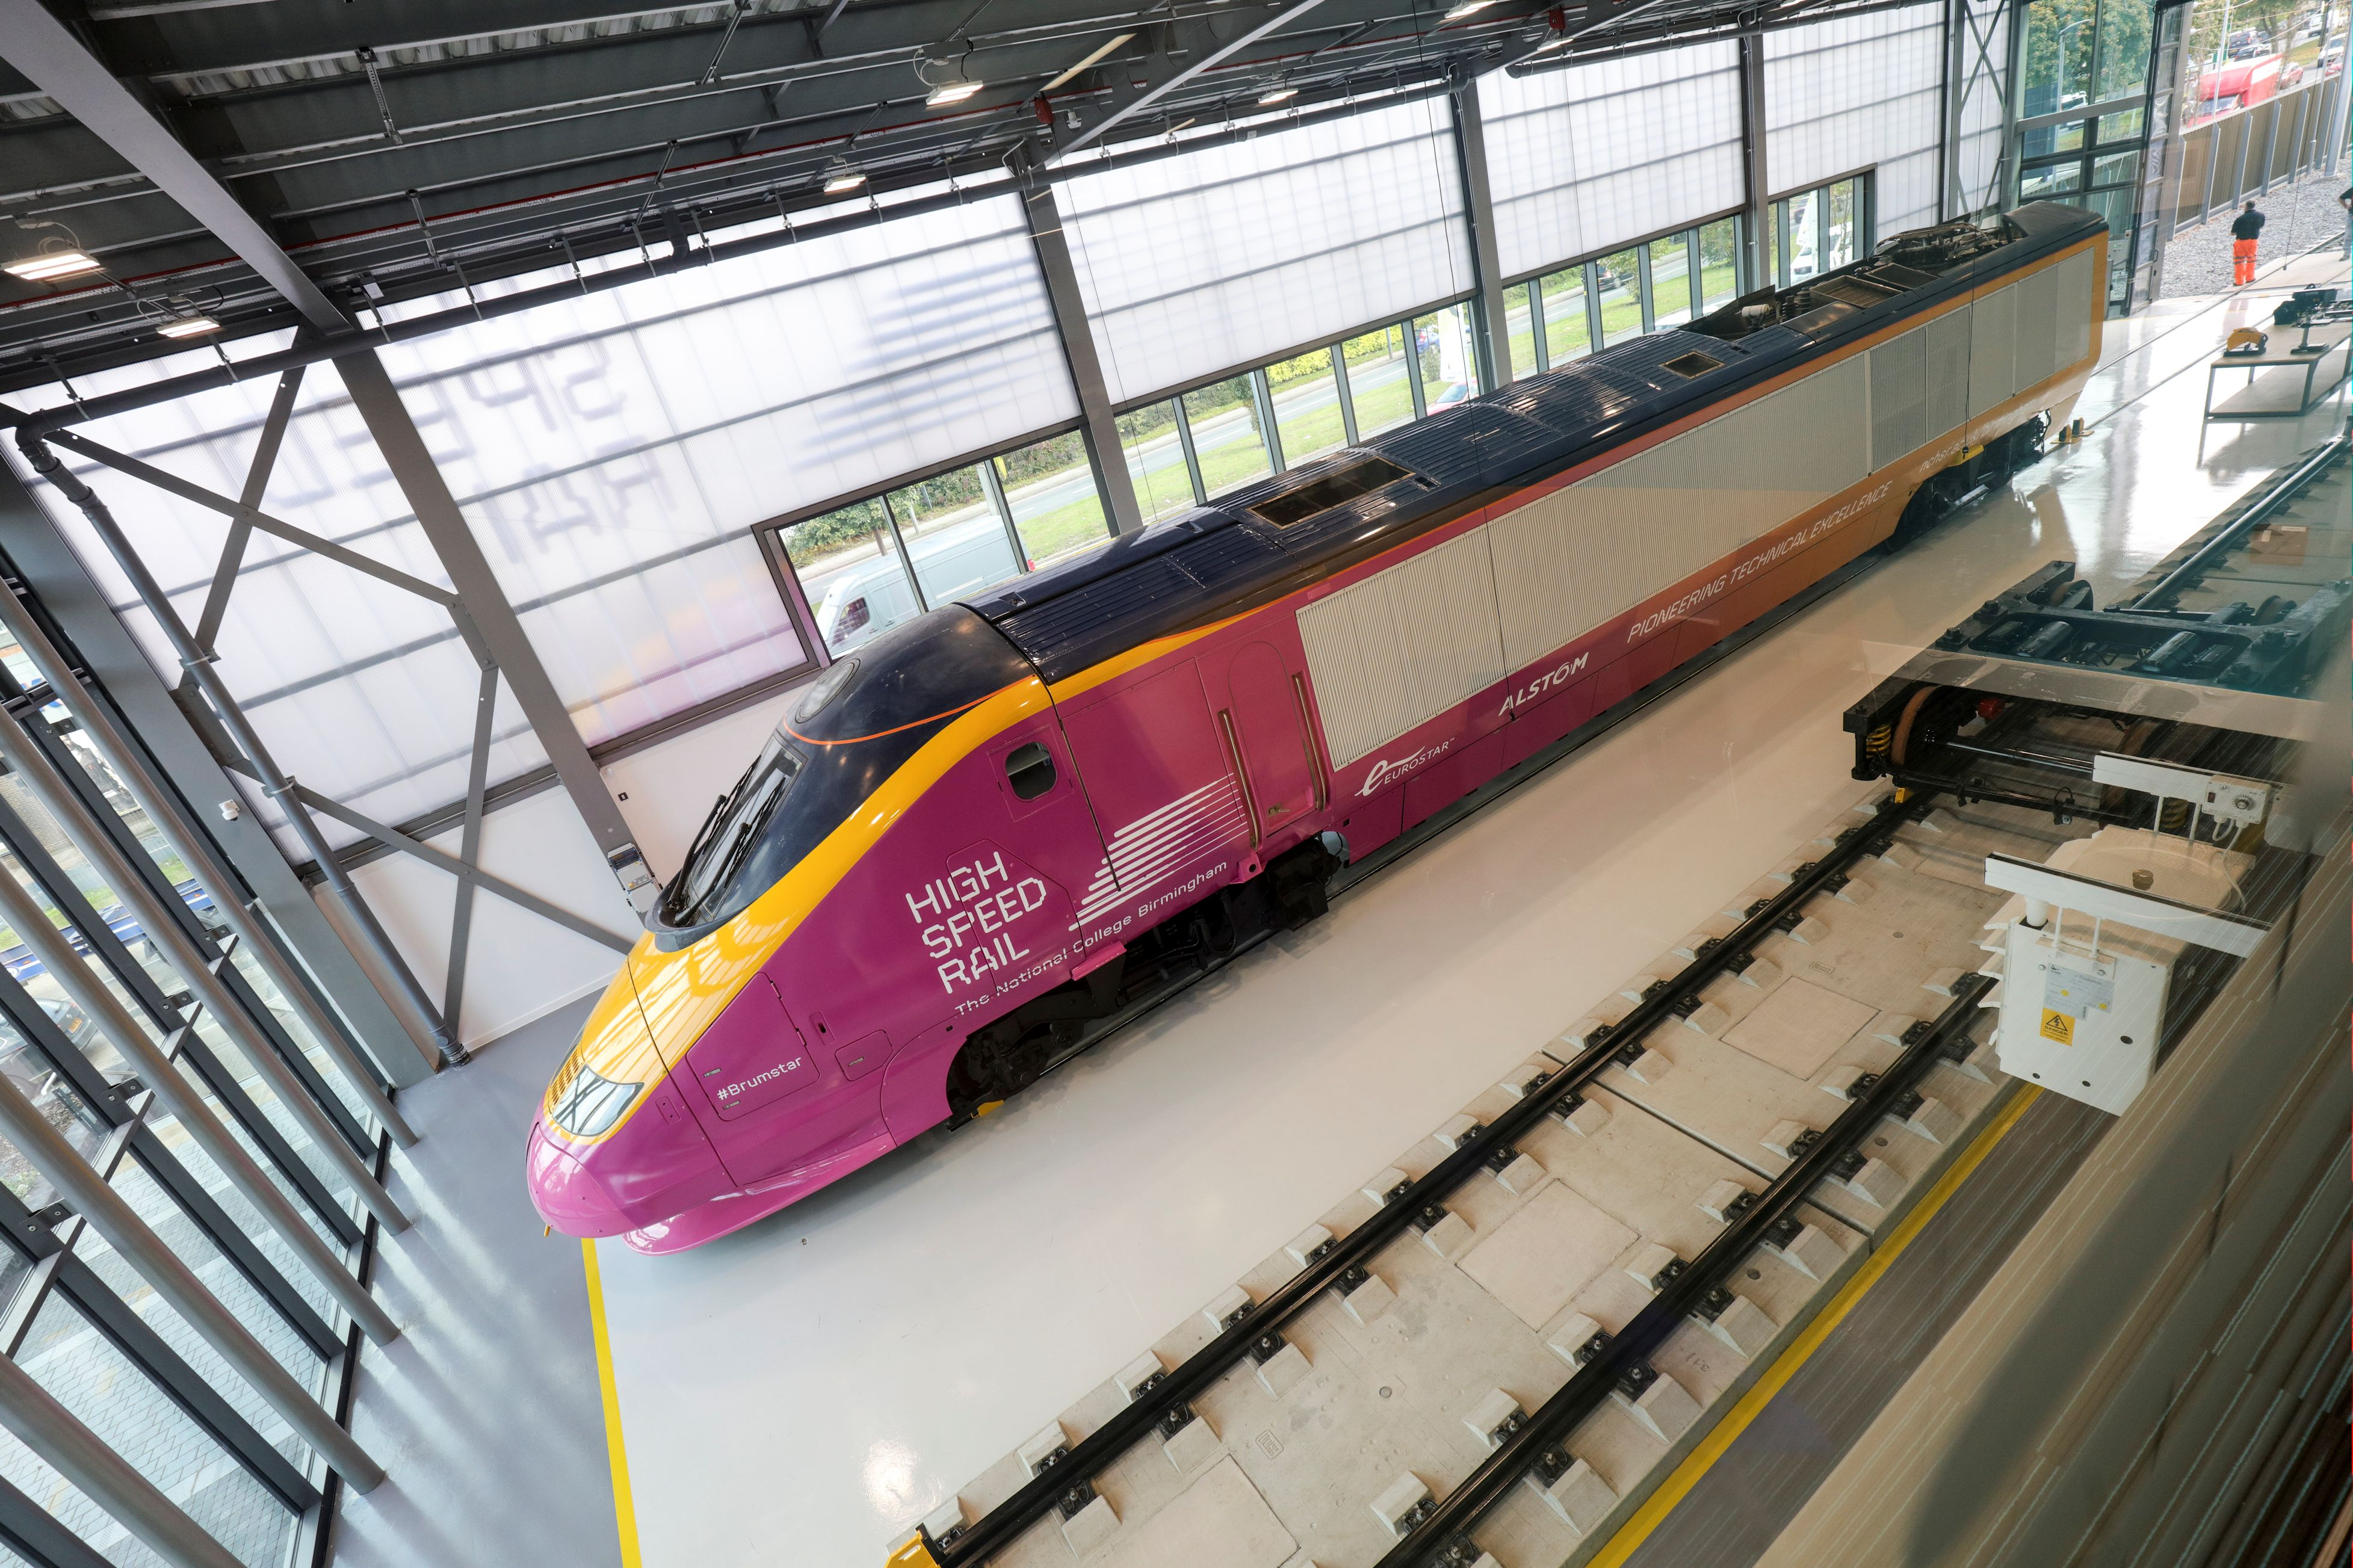 0025_HIGH SPEED RAIL NATIONAL COLLEGE WD_ BIRMINGHAM midjpg.jpg